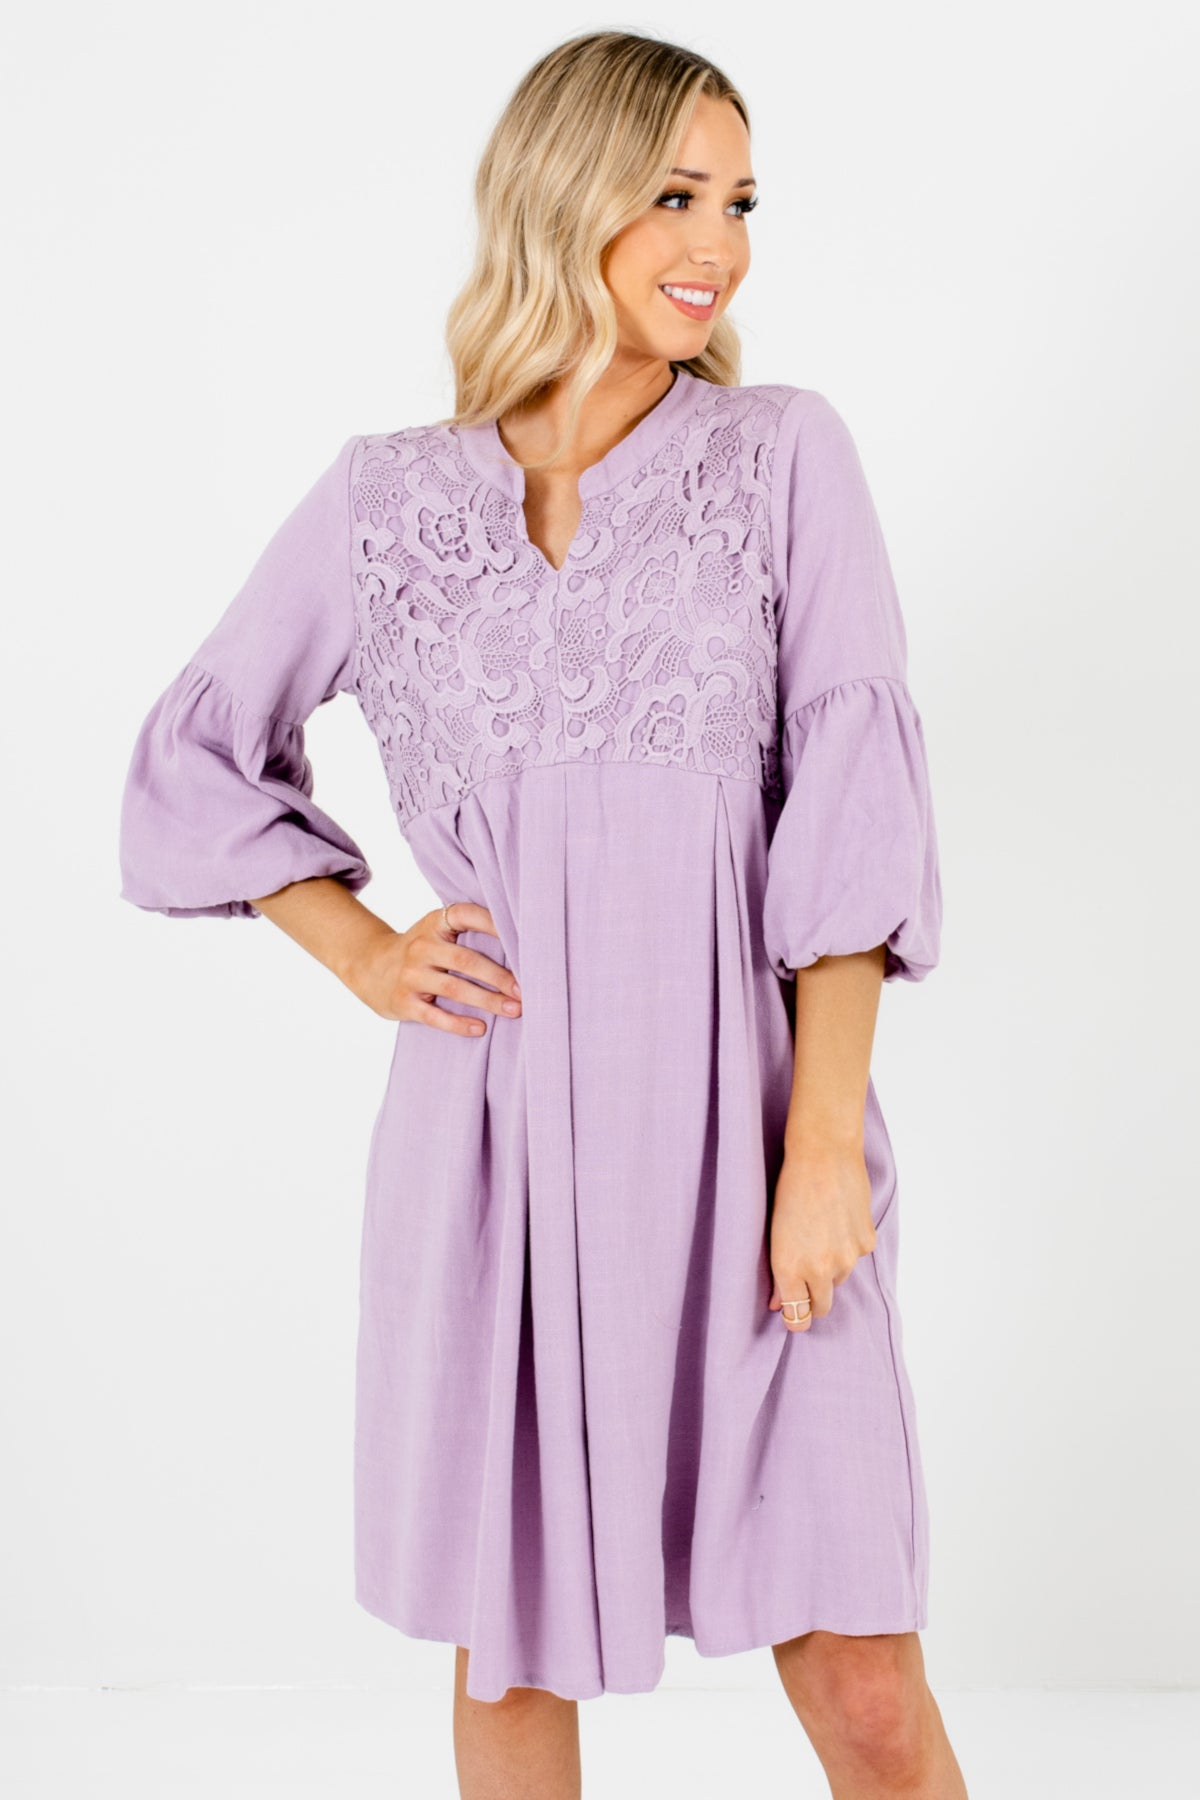 Lilac Purple Puff Sleeve Peasant Bohemian Chic Crochet Lace Dresses